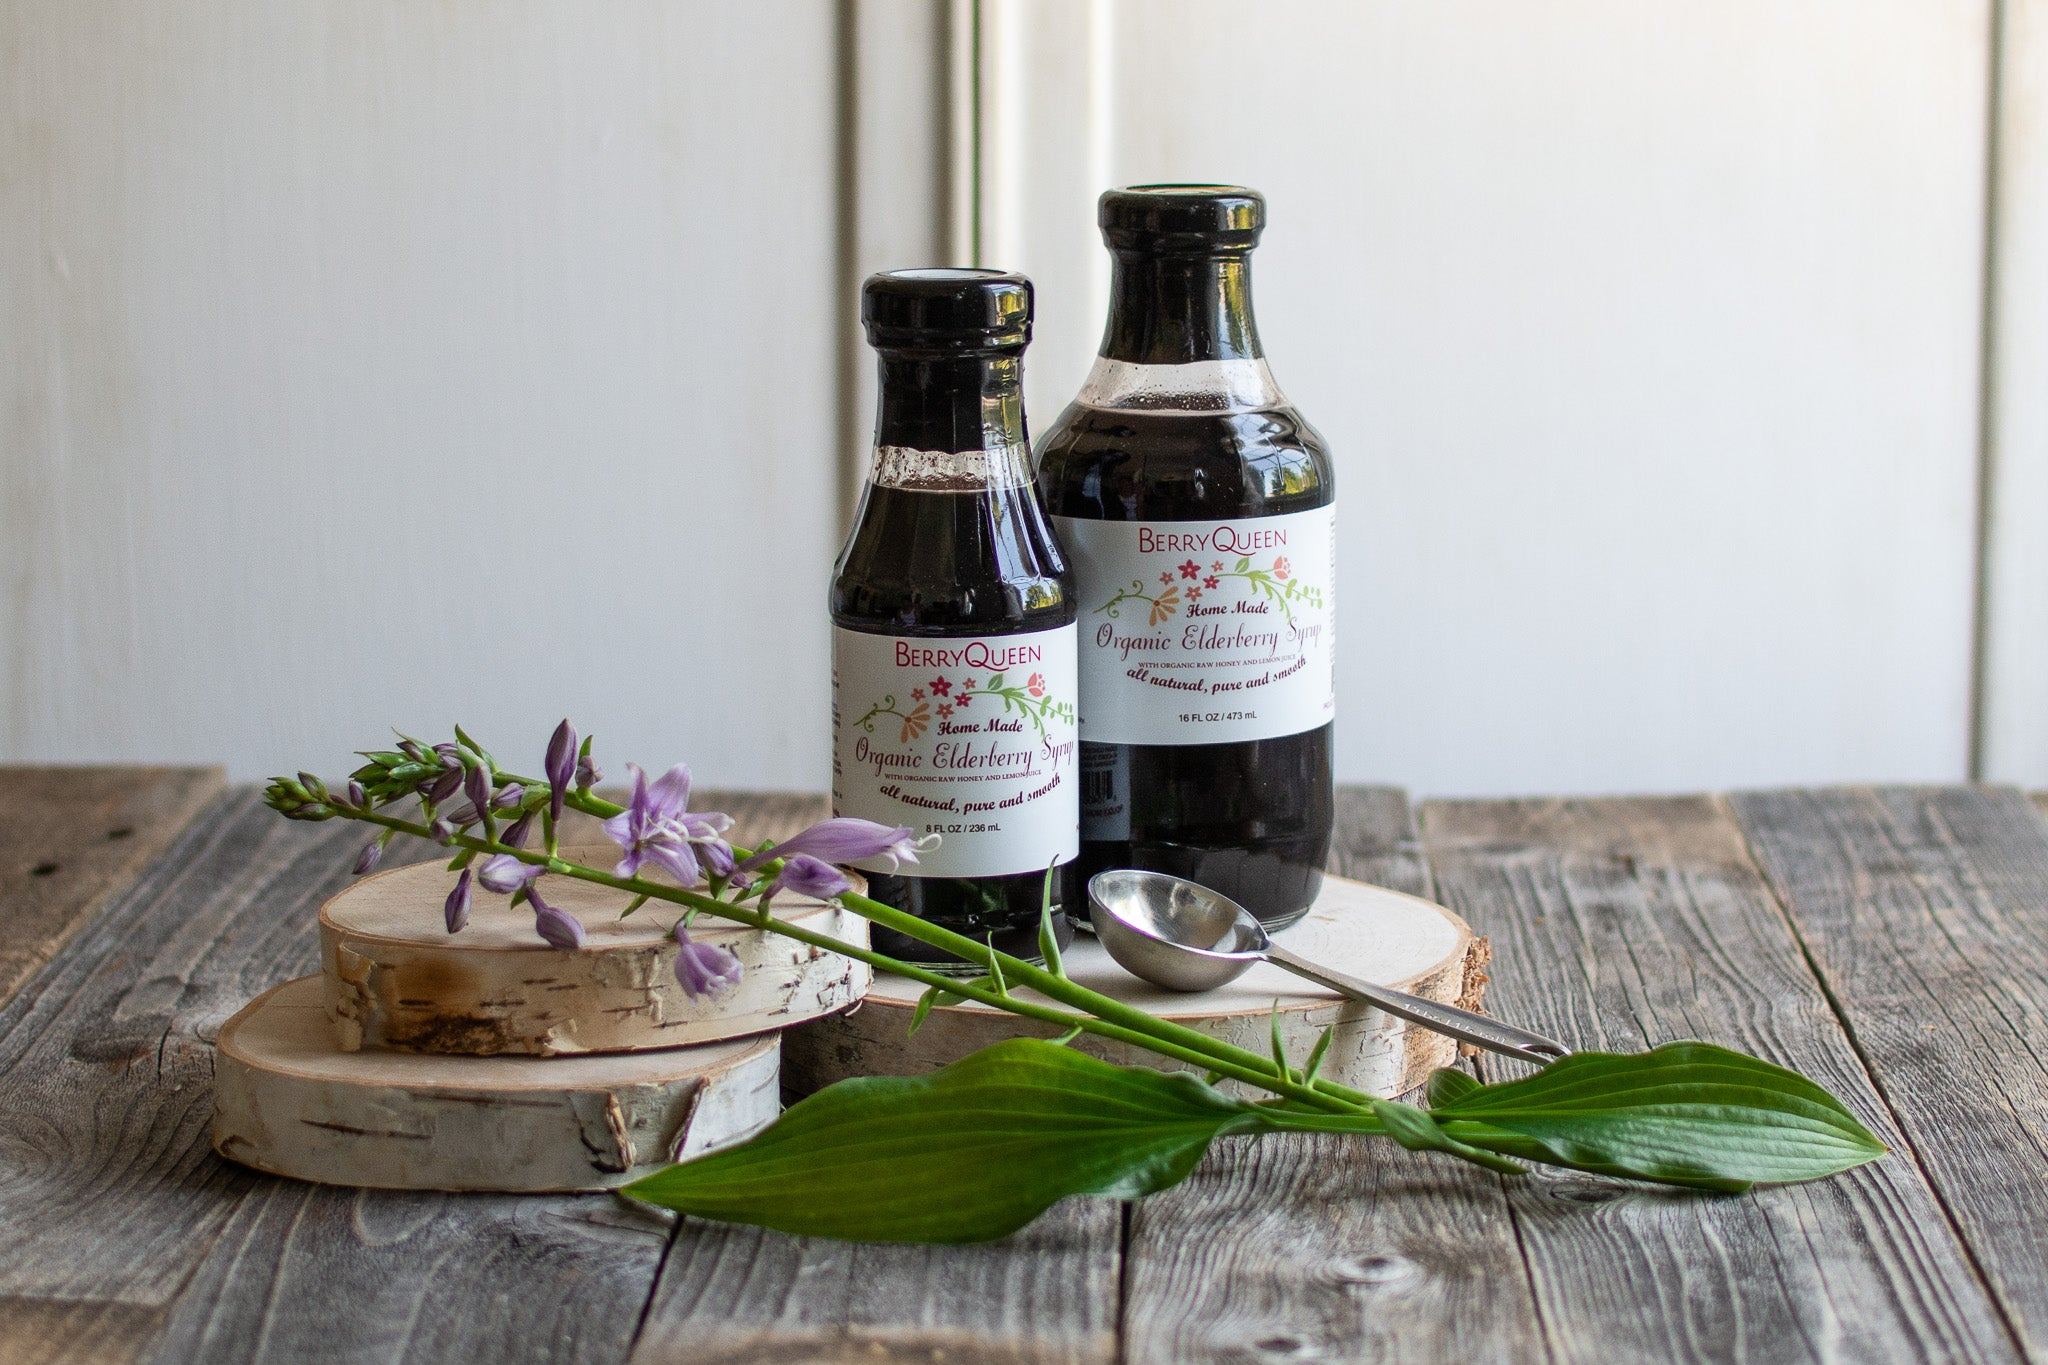 Large Organic Elderberry Syrup